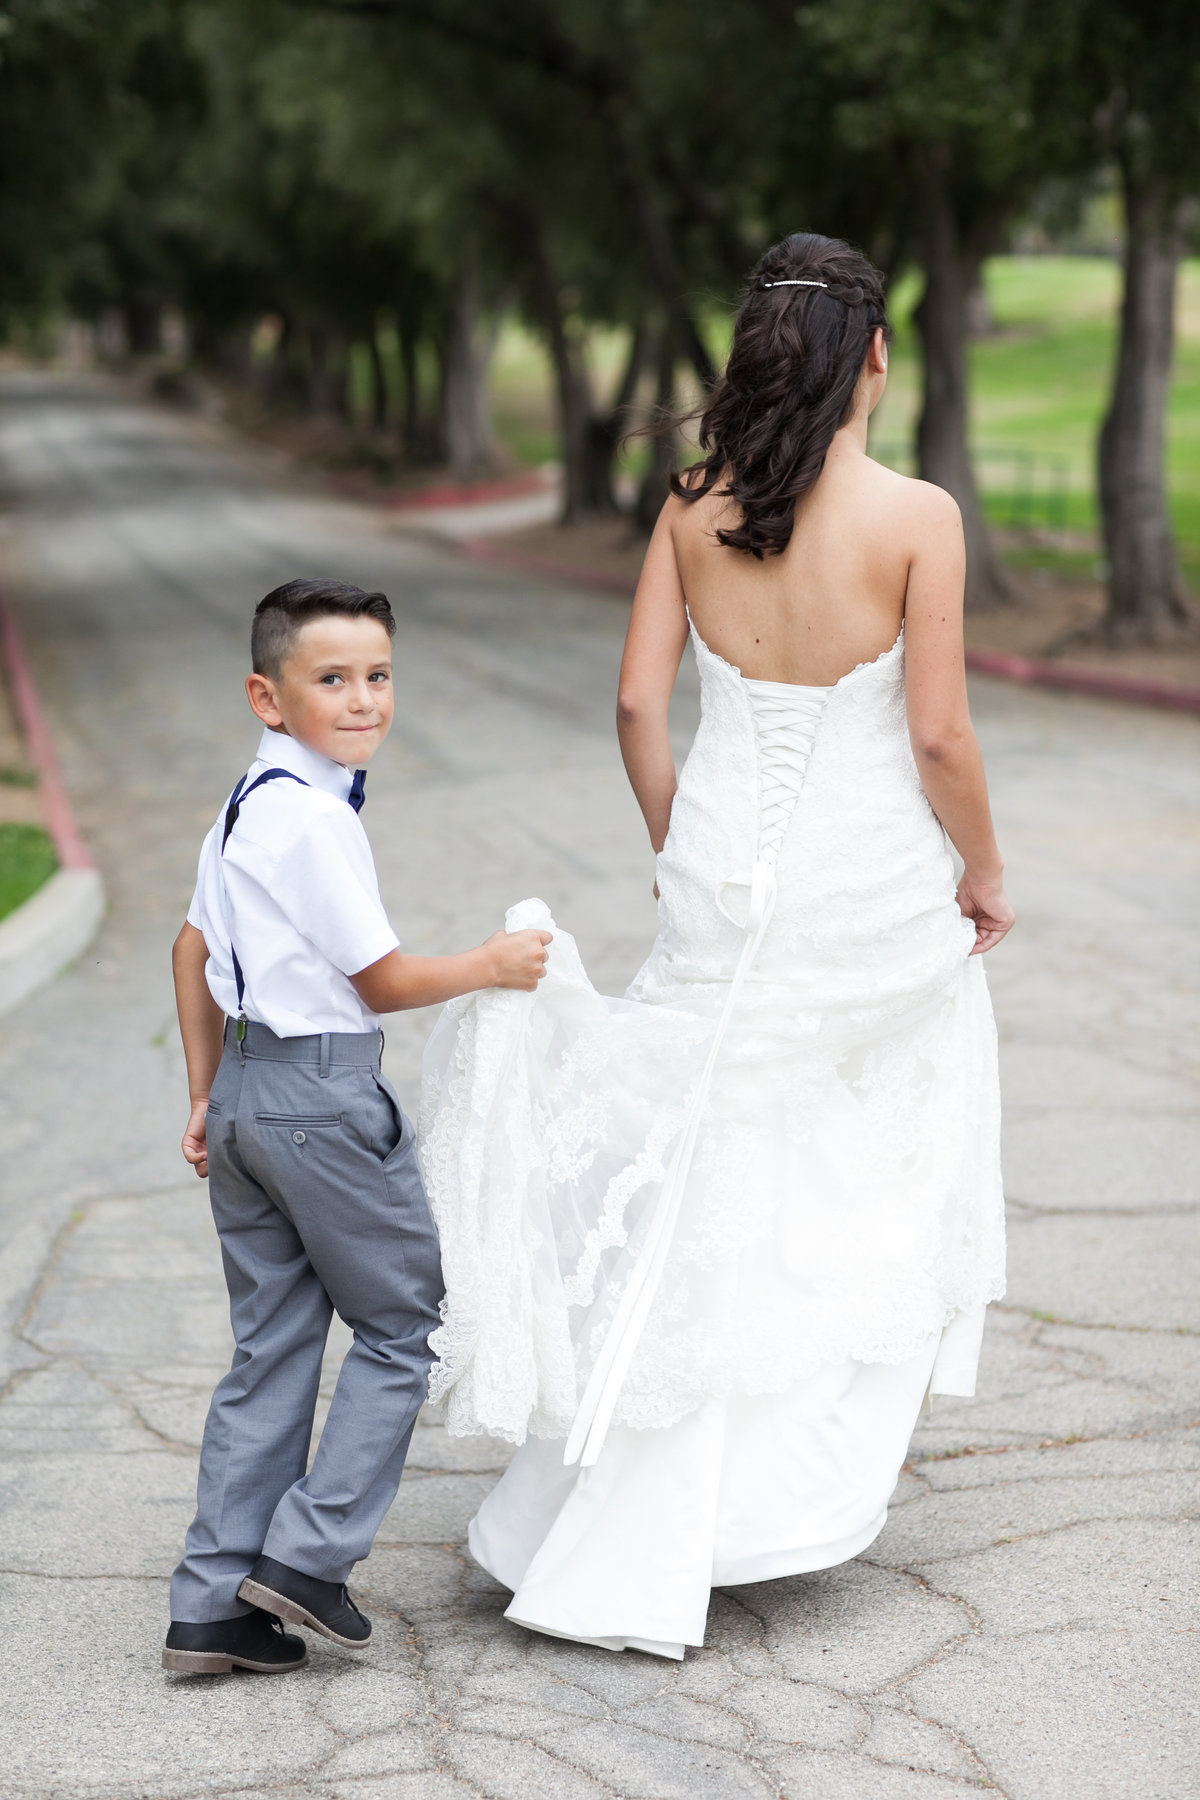 candid photo of son helping  mom by holding wedding dress